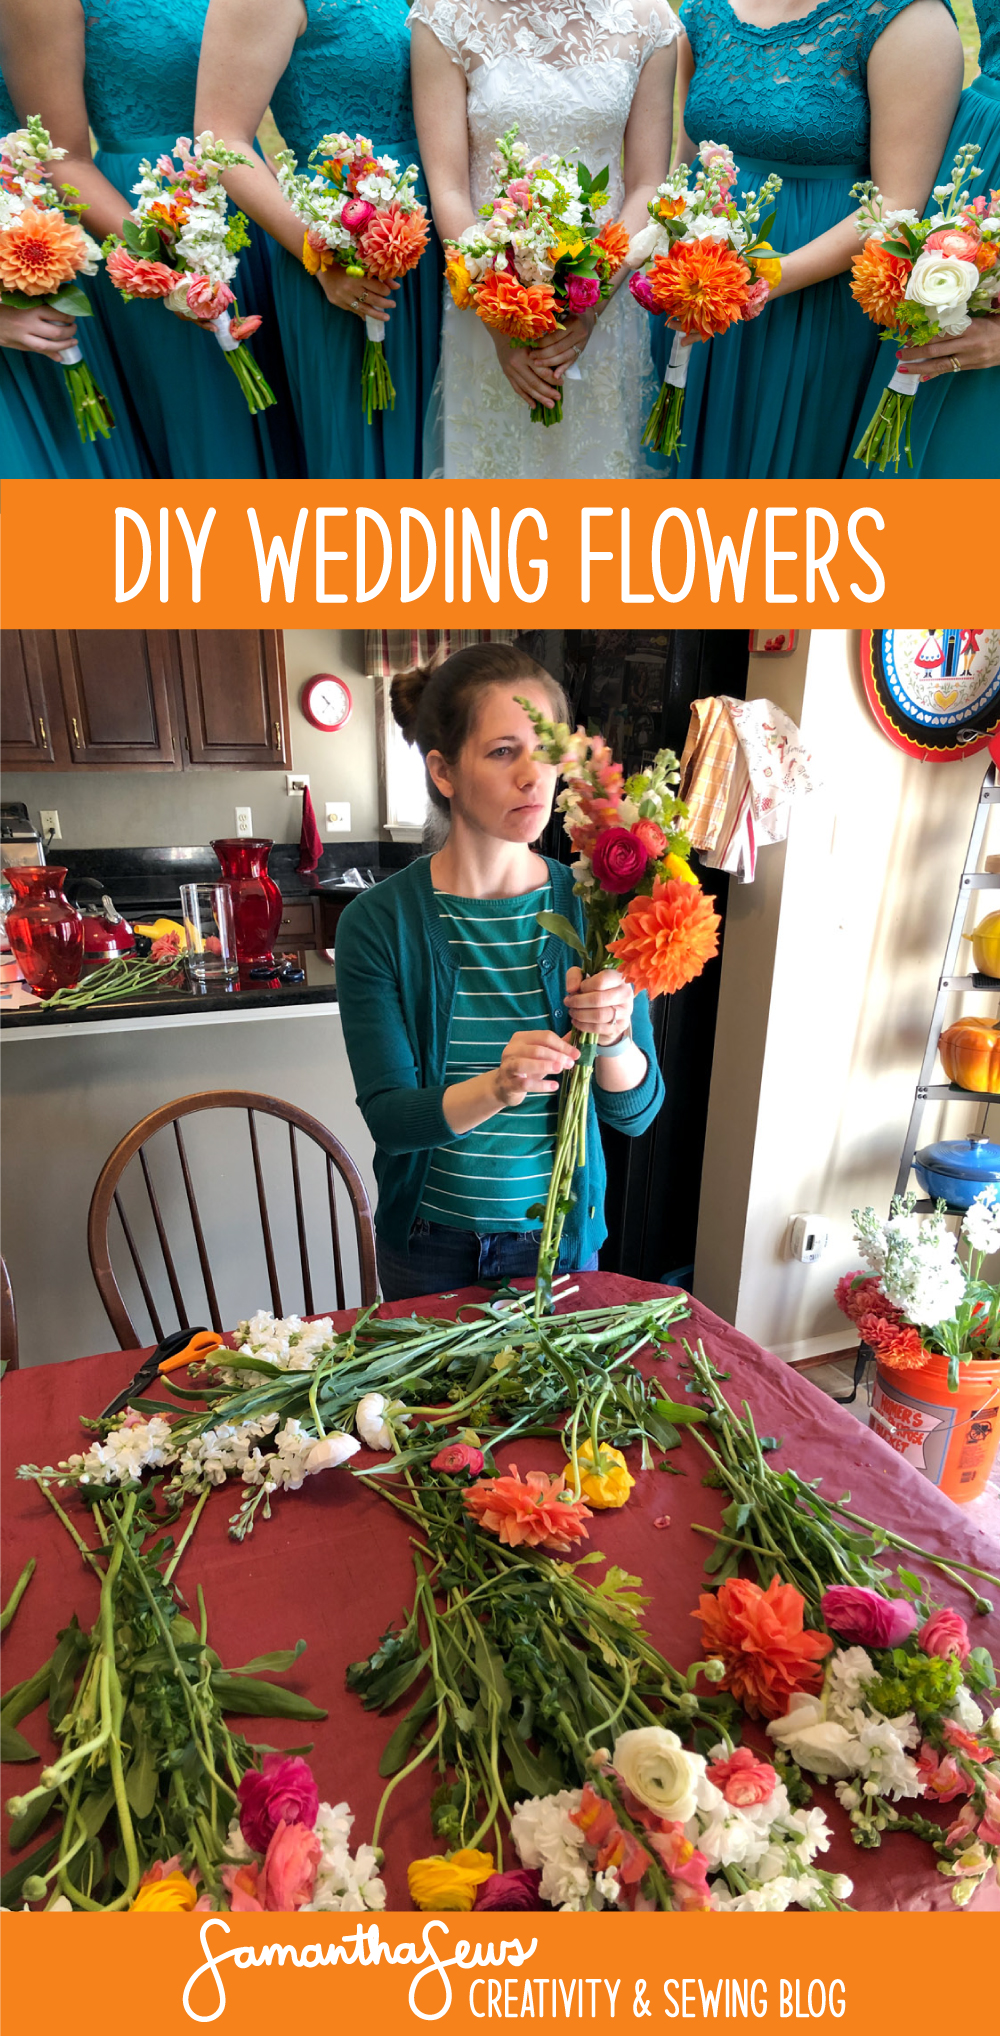 DIY Wedding Flowers: Make your own wedding bouquets